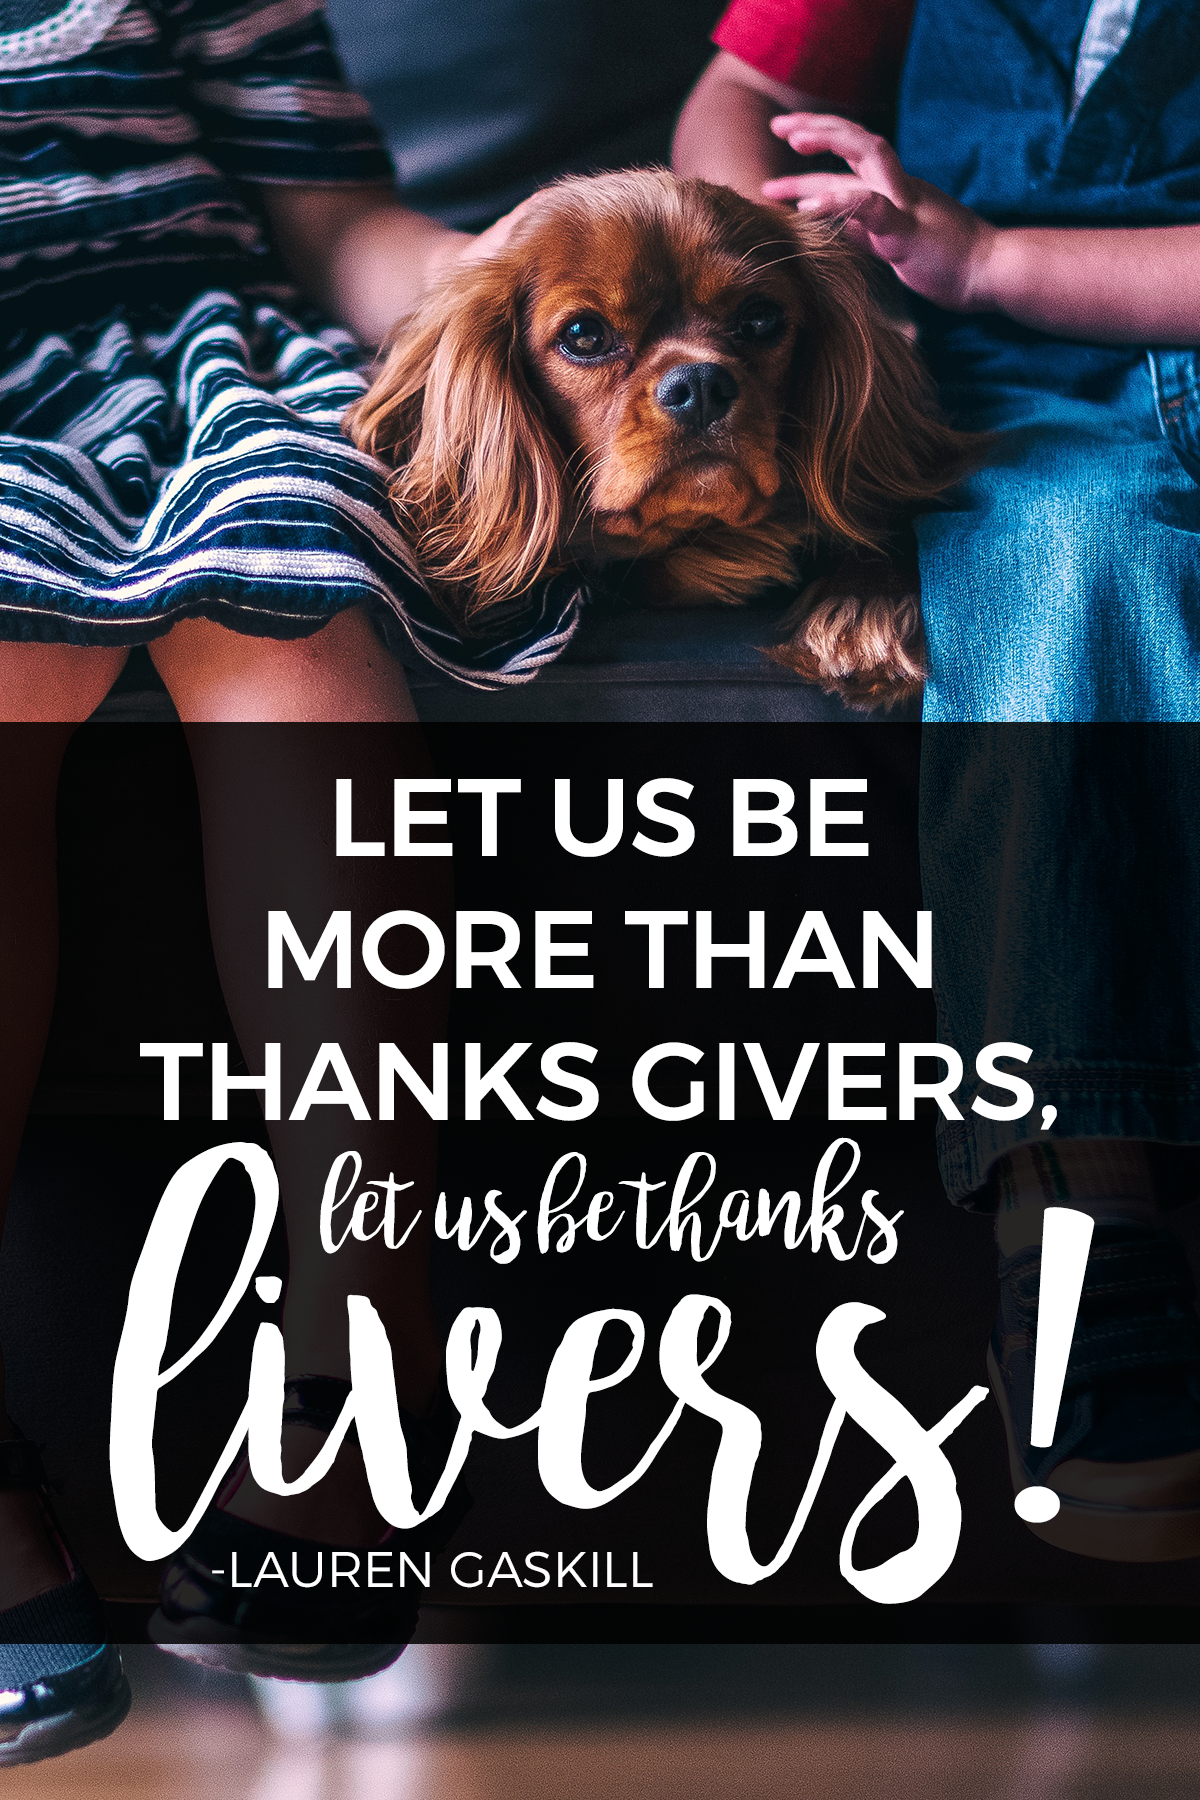 Let us be givers and livers of thanks.